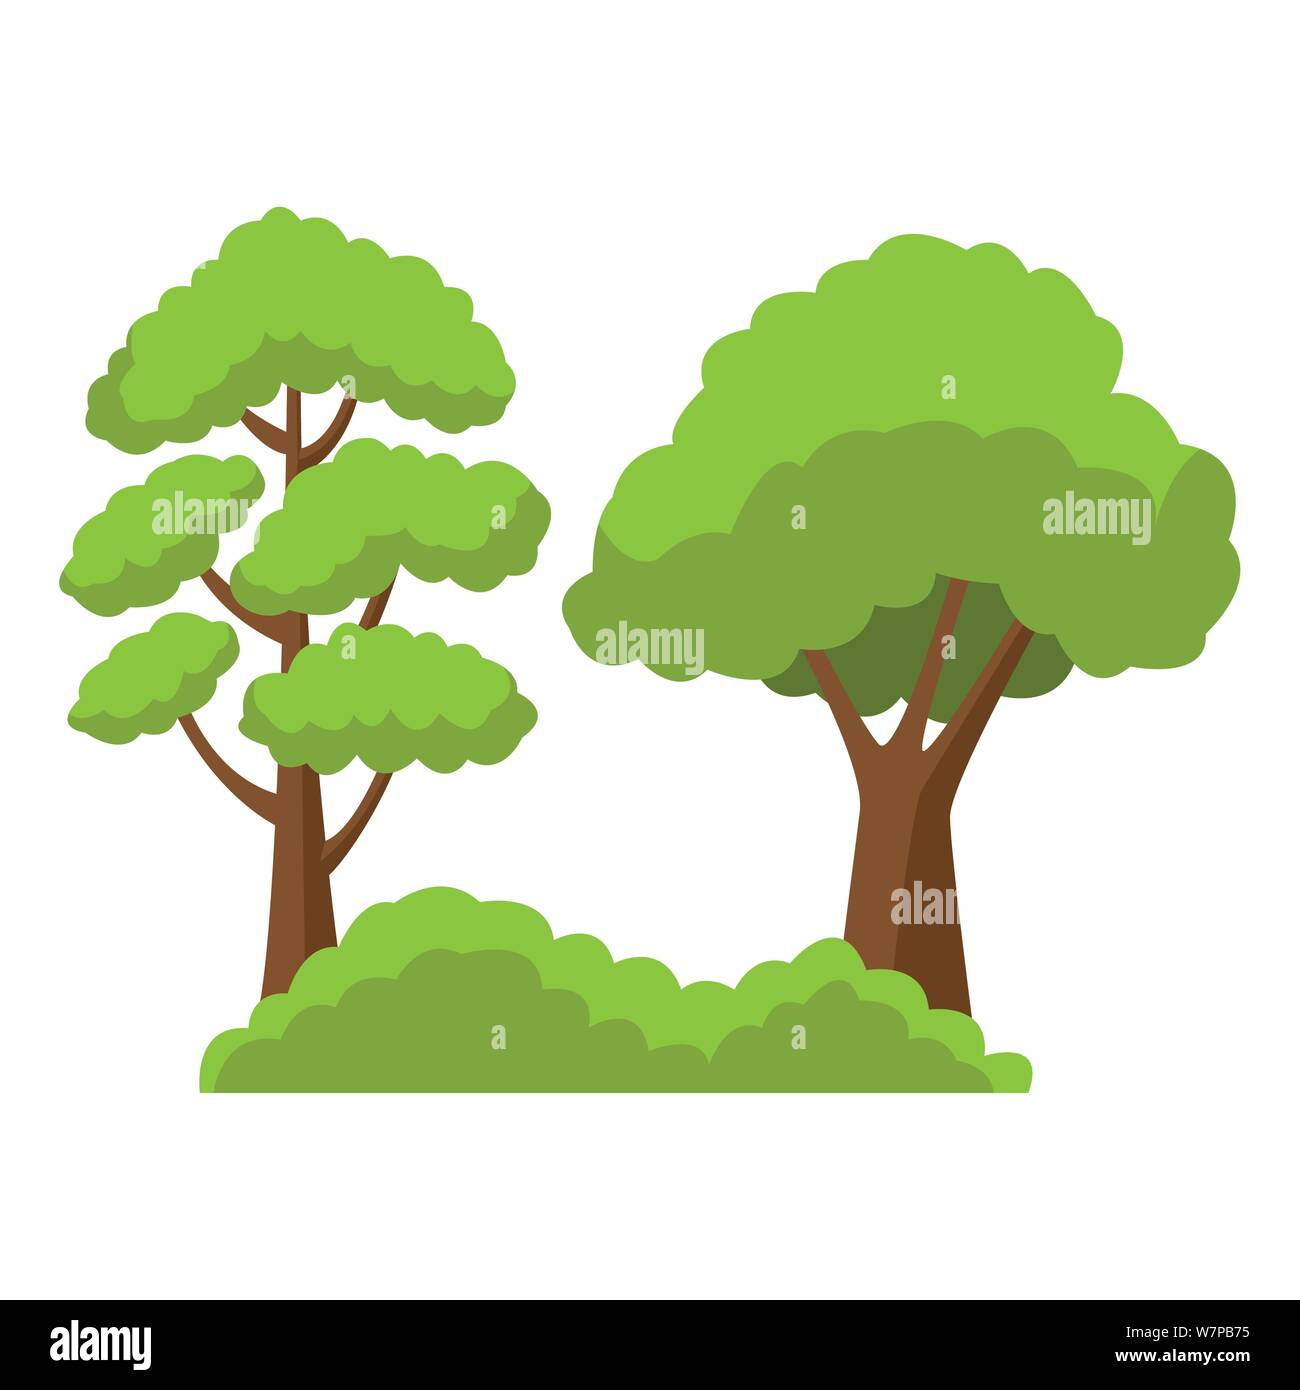 Cartoon Trees High Resolution Stock Photography And Images Alamy We love how our artists stage different cartoon characters like mario, mickey mouse, zelda etc. https www alamy com trees on bushes nature cartoon image262949881 html